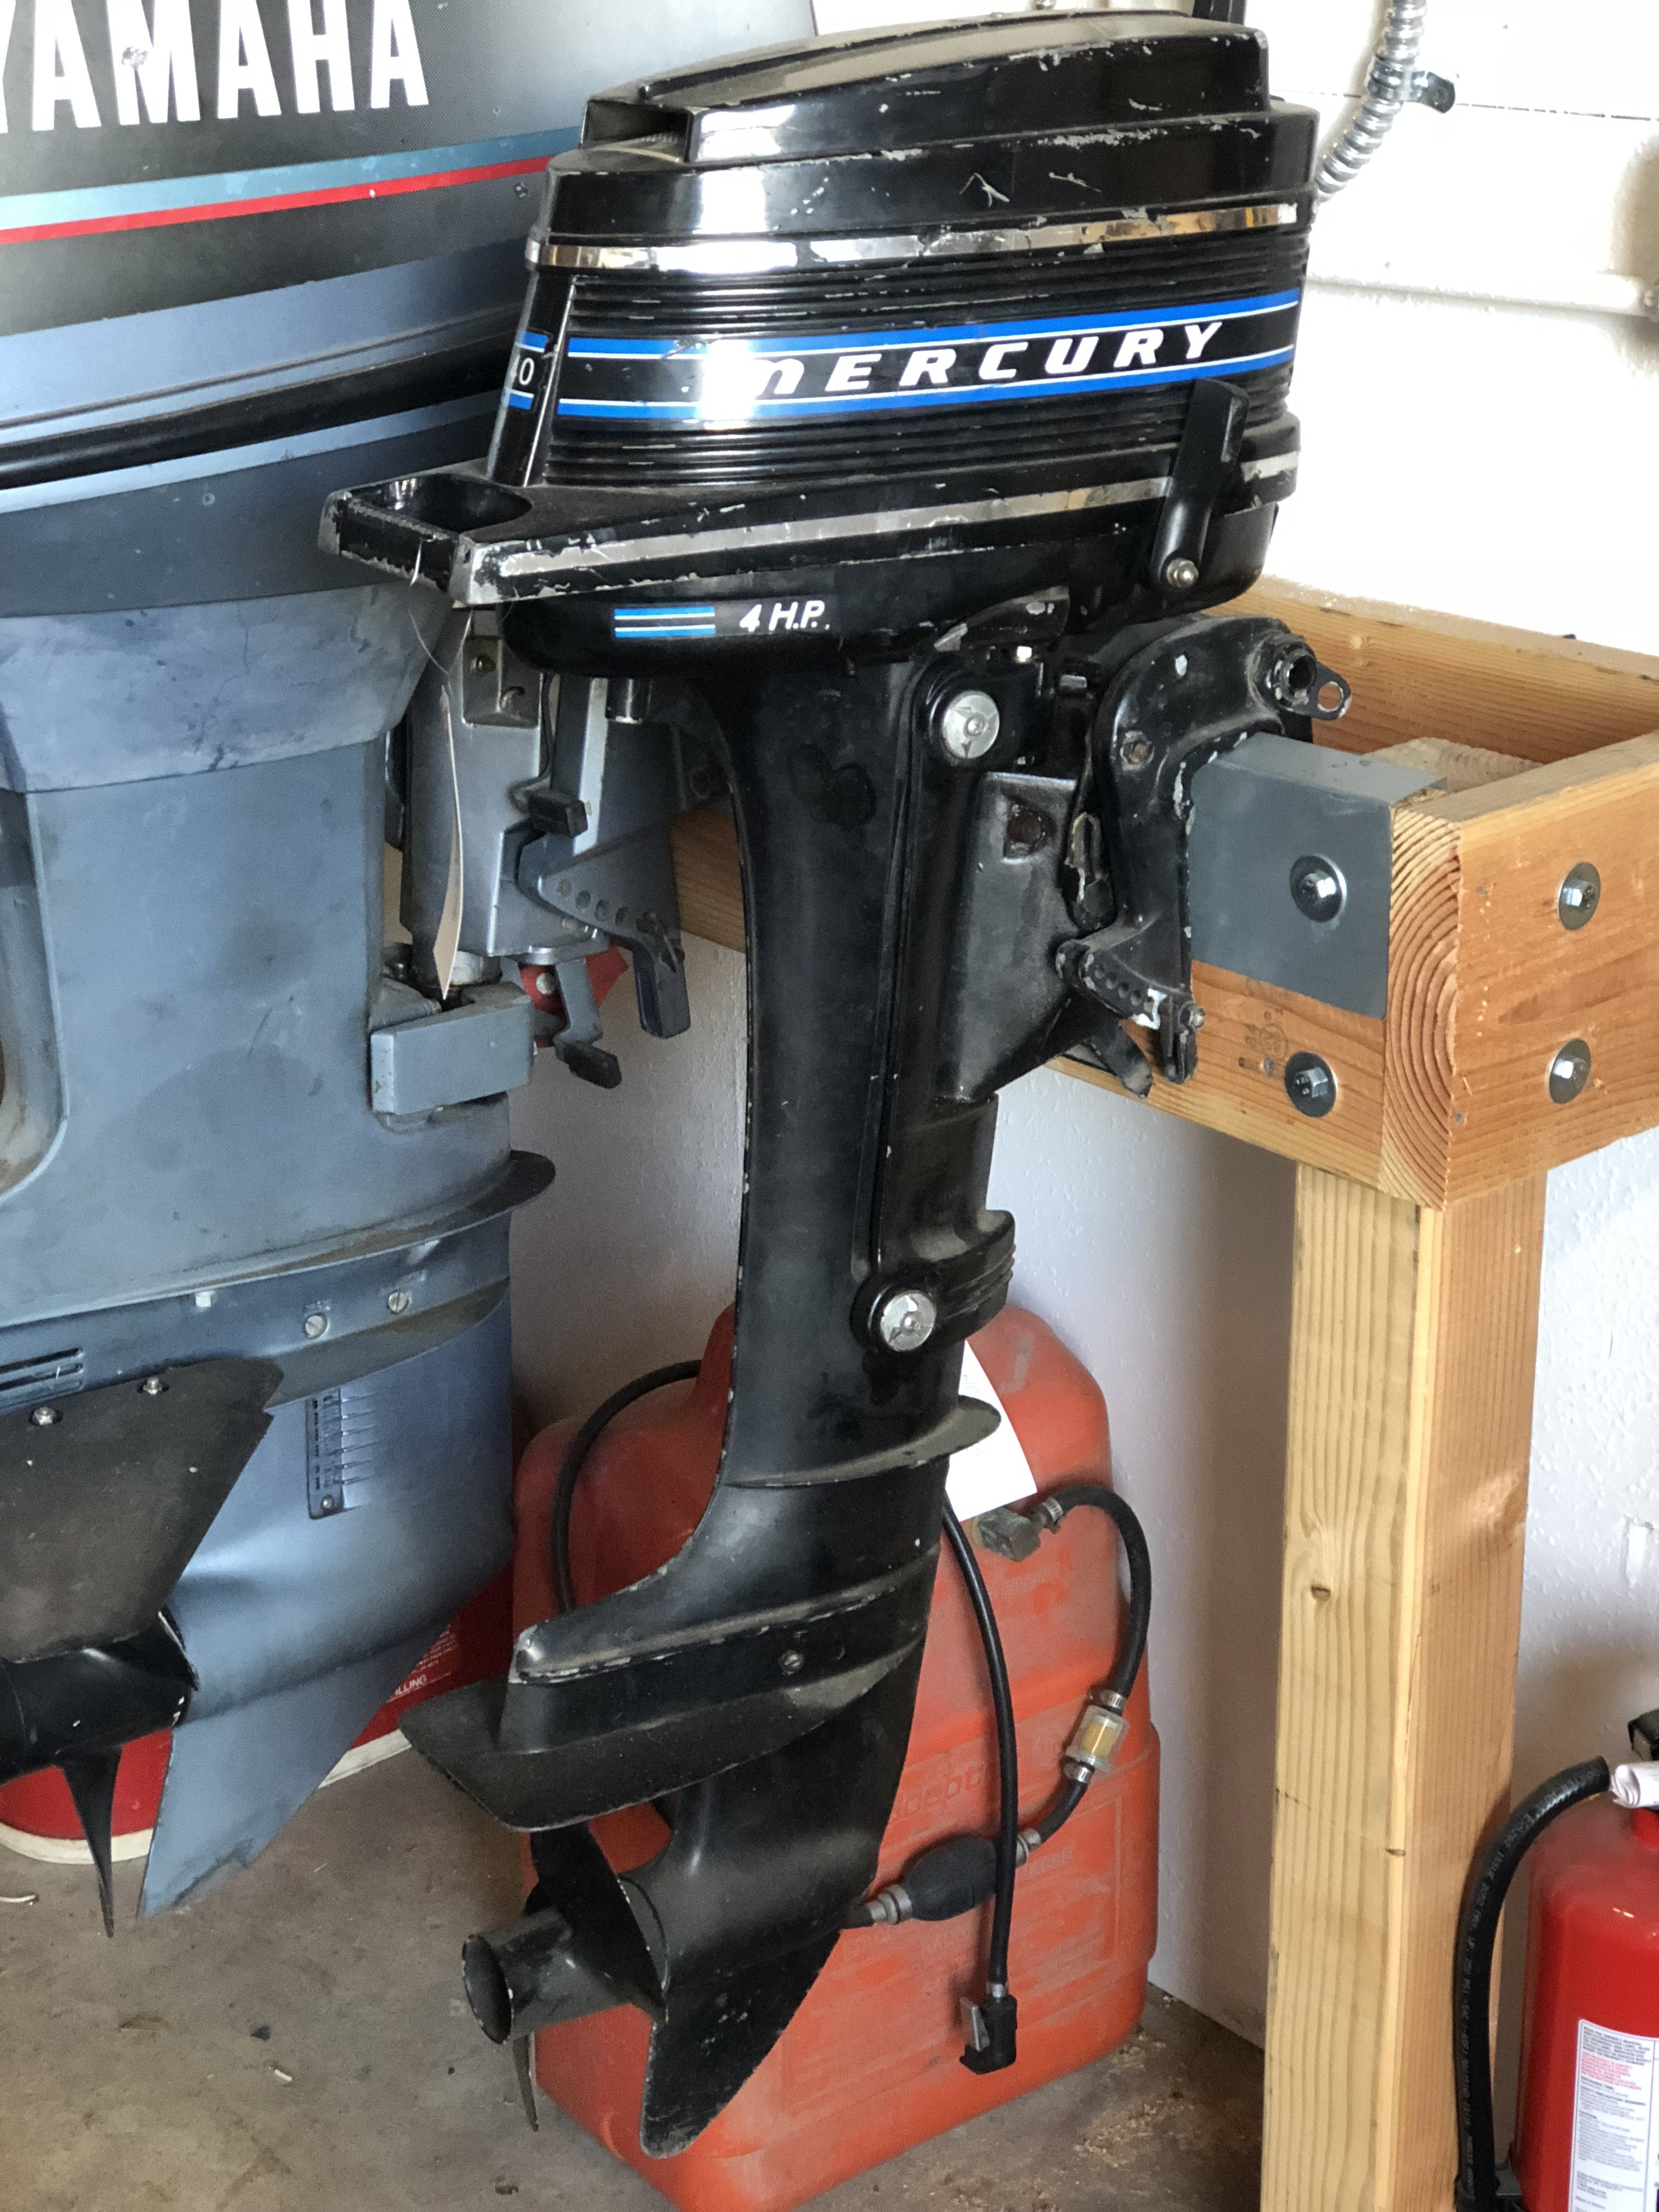 Mercury 2 Stroke Outboard specs to Starting